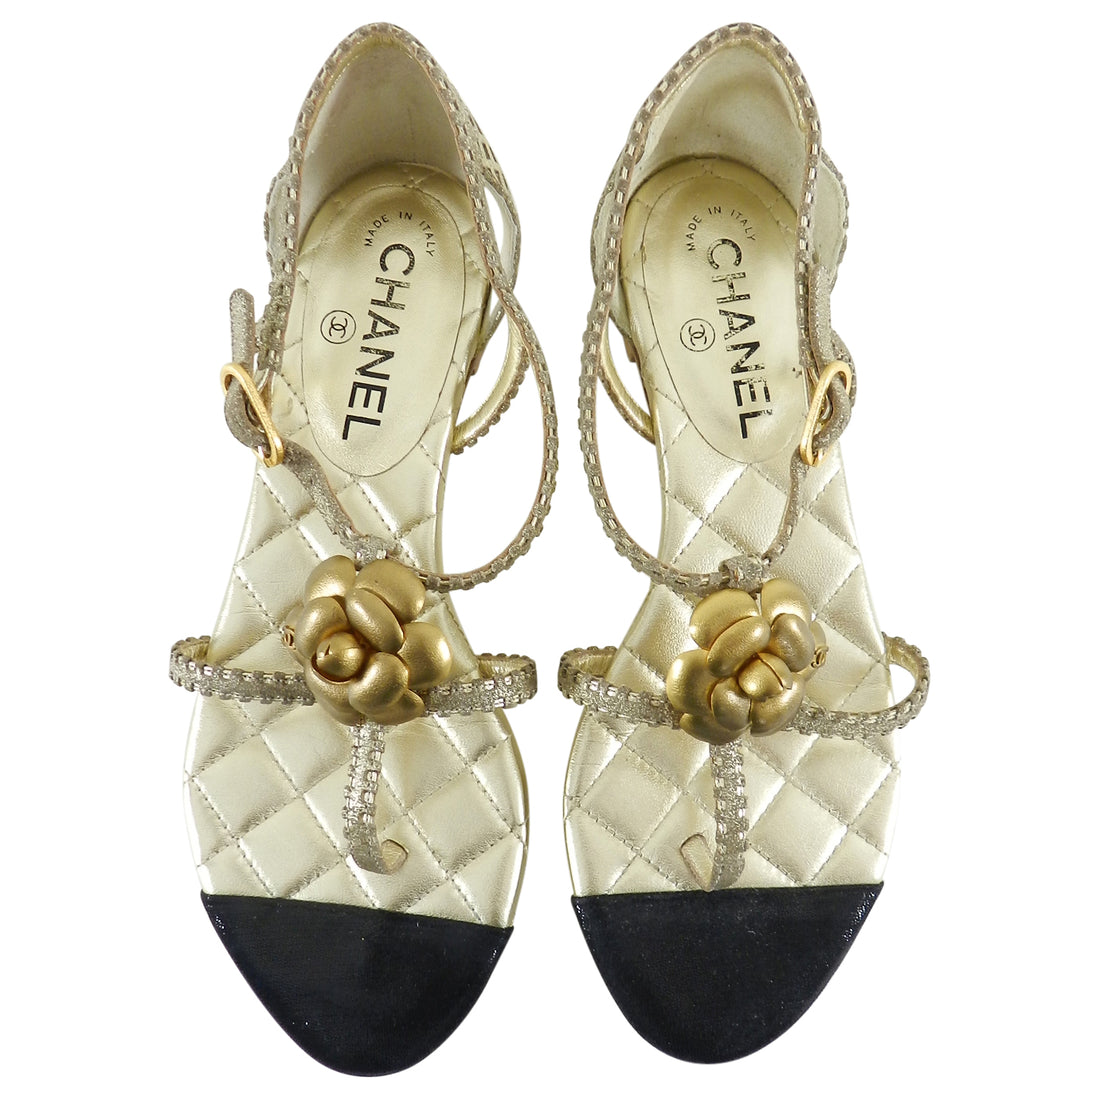 Chanel Gold Quilt Flat CC Camelia Sandals - 37